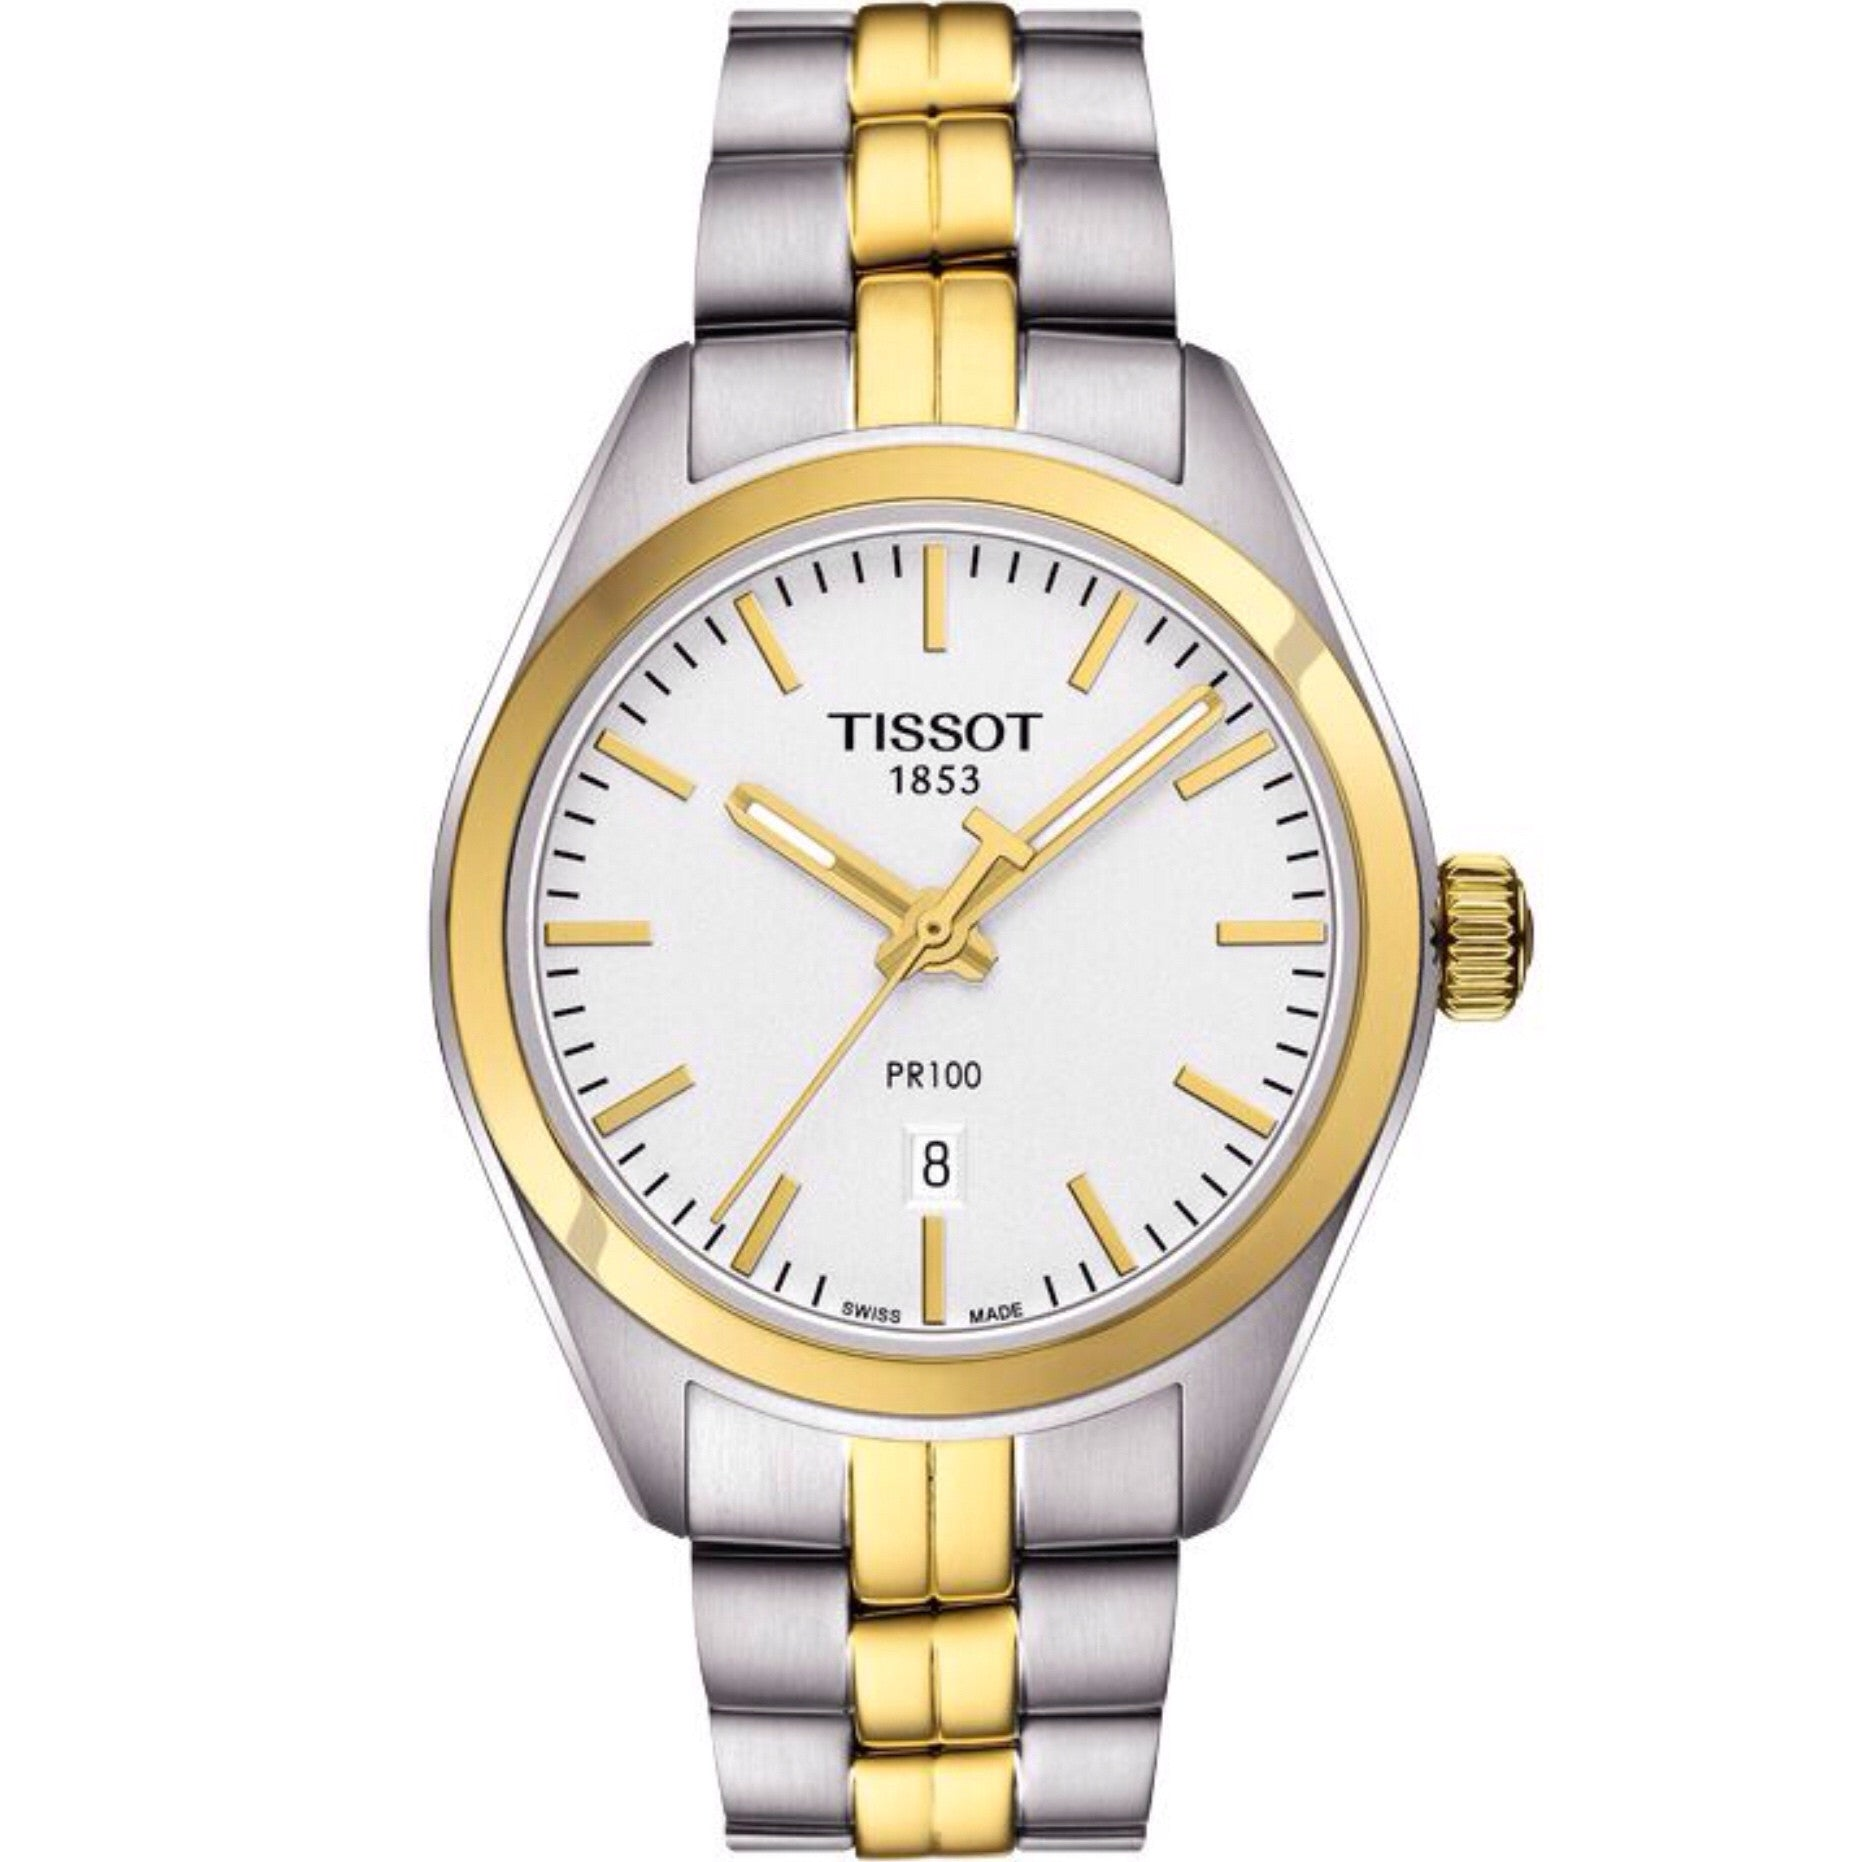 Tissot PR 100 Women's Quartz Silver Dial with Two-Tone Stainless Steel Bracelet